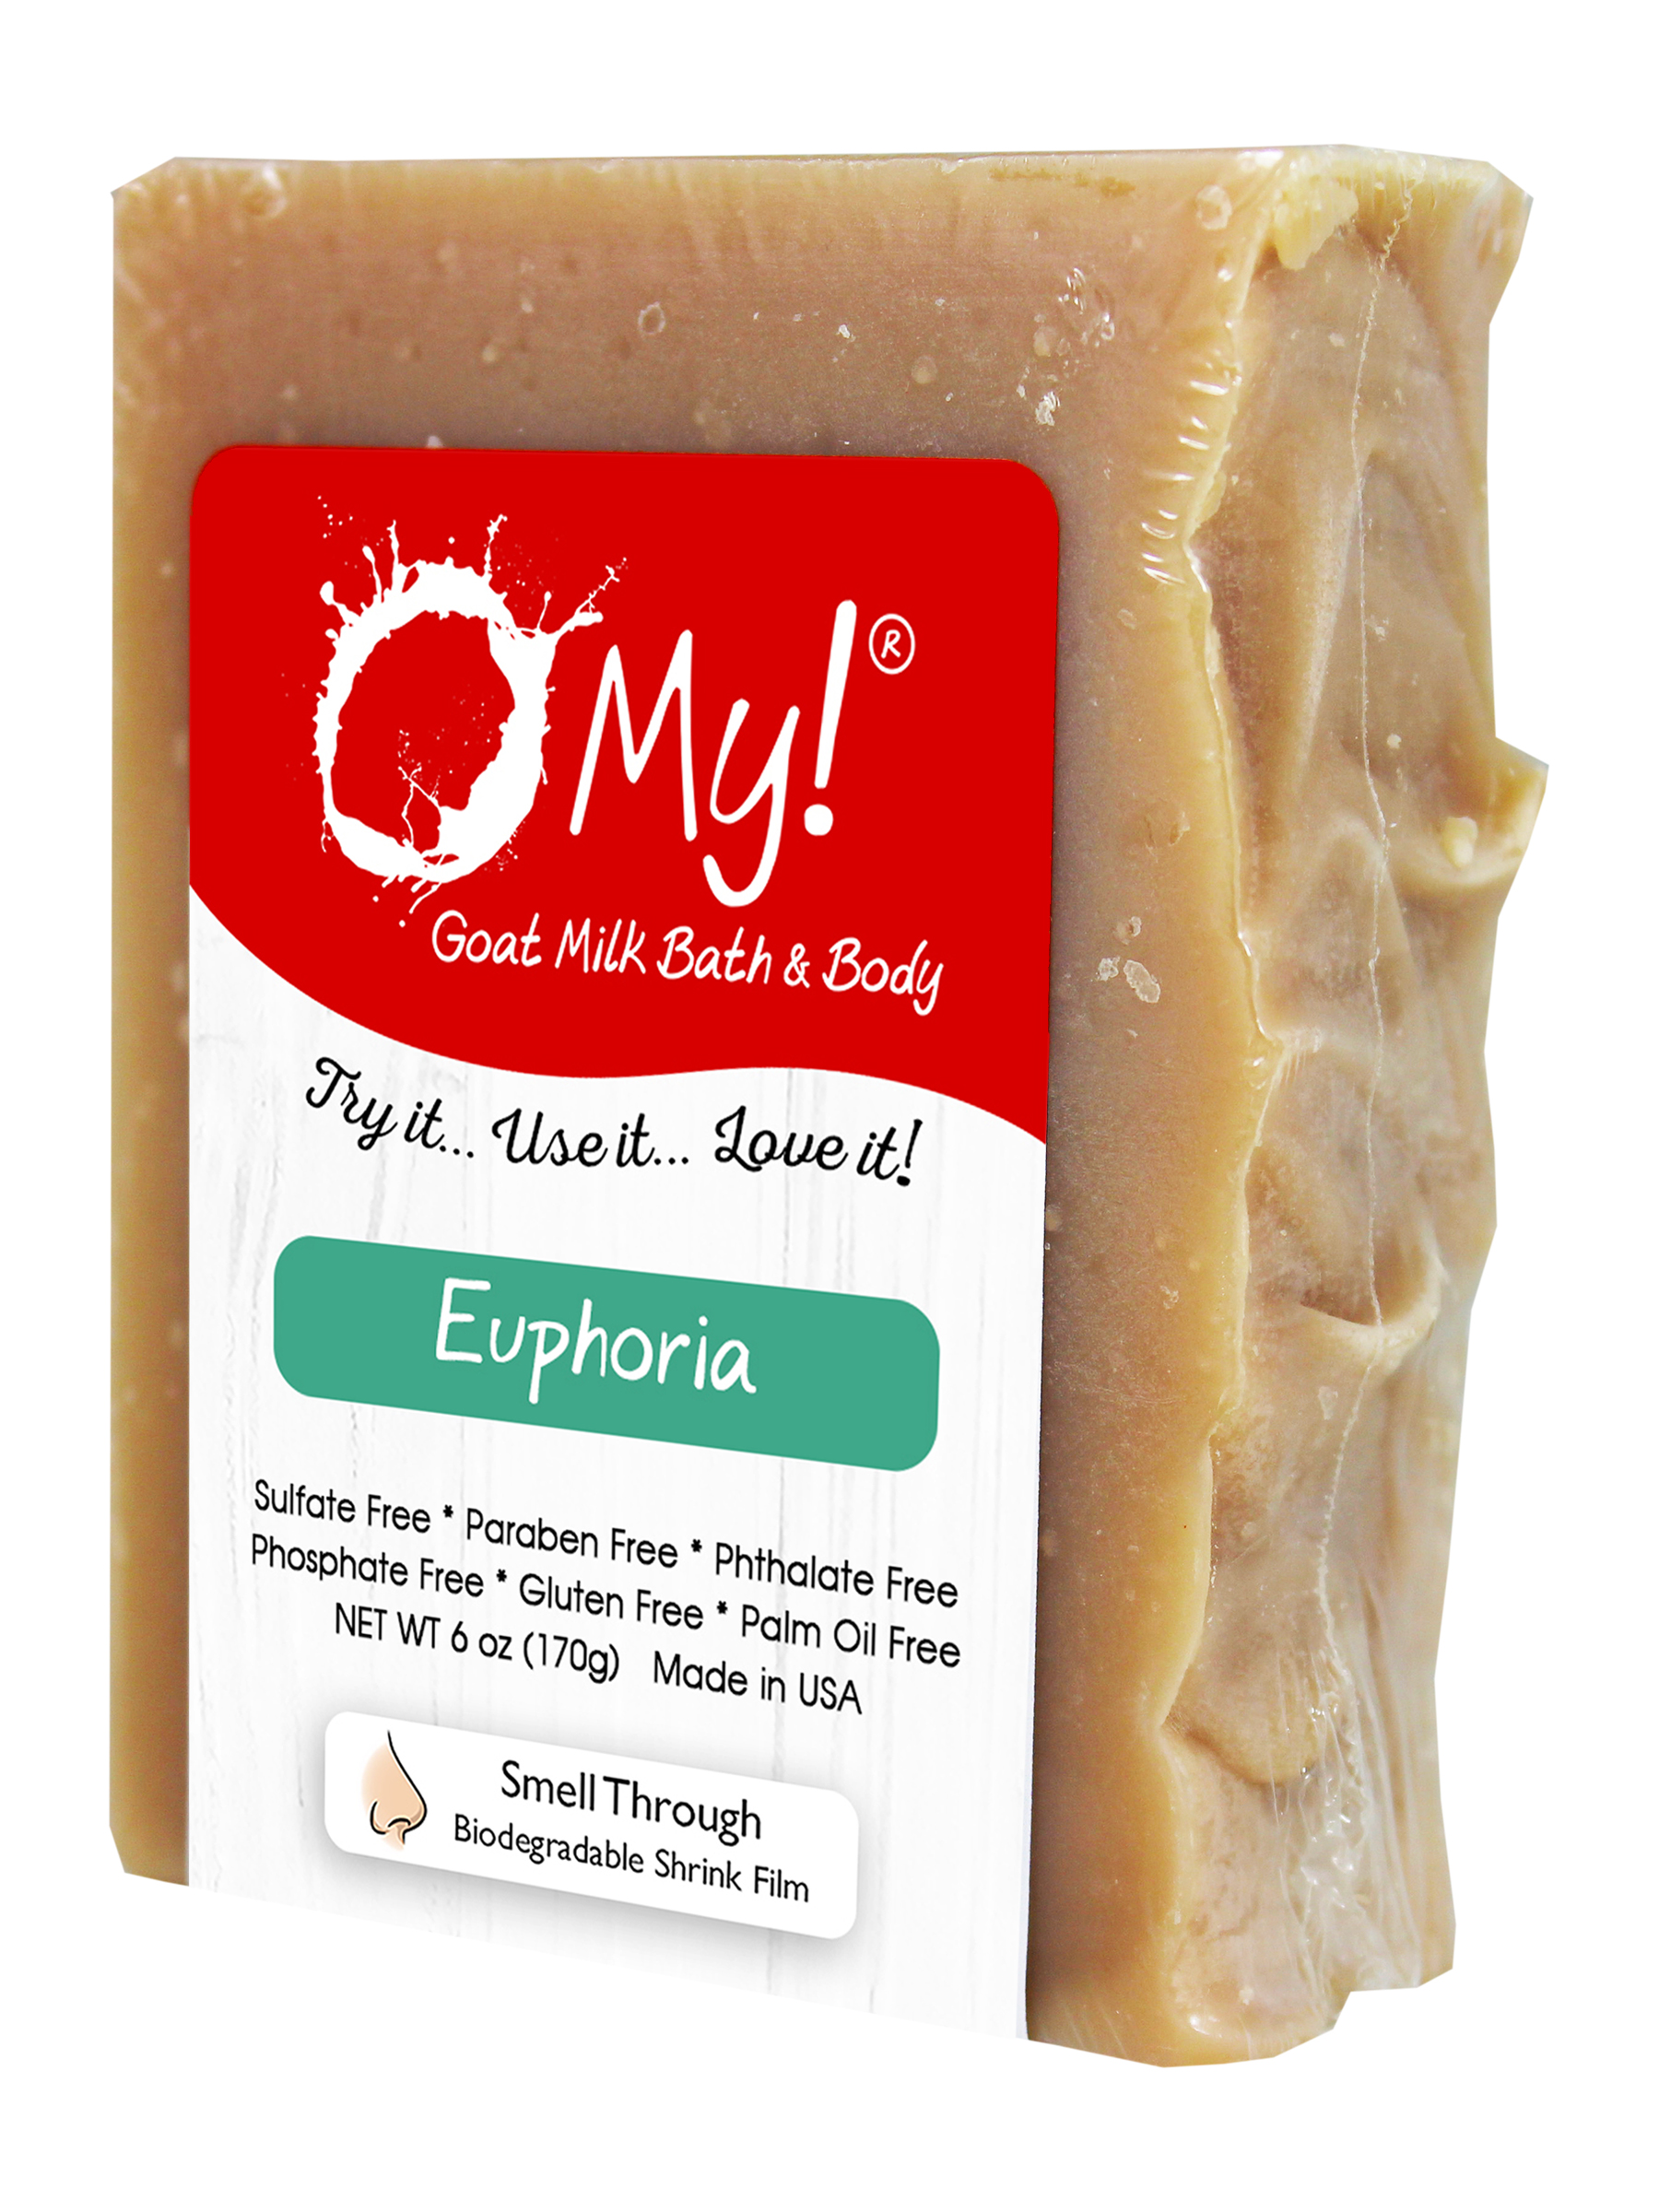 O My! Goat Milk Soap 6oz Bar - Euphoria | Made with Farm-Fresh Goat Milk | Moisturizes dry skin | Gently Exfoliates | Paraben Free | Leaping Bunny Certified | Made in USA